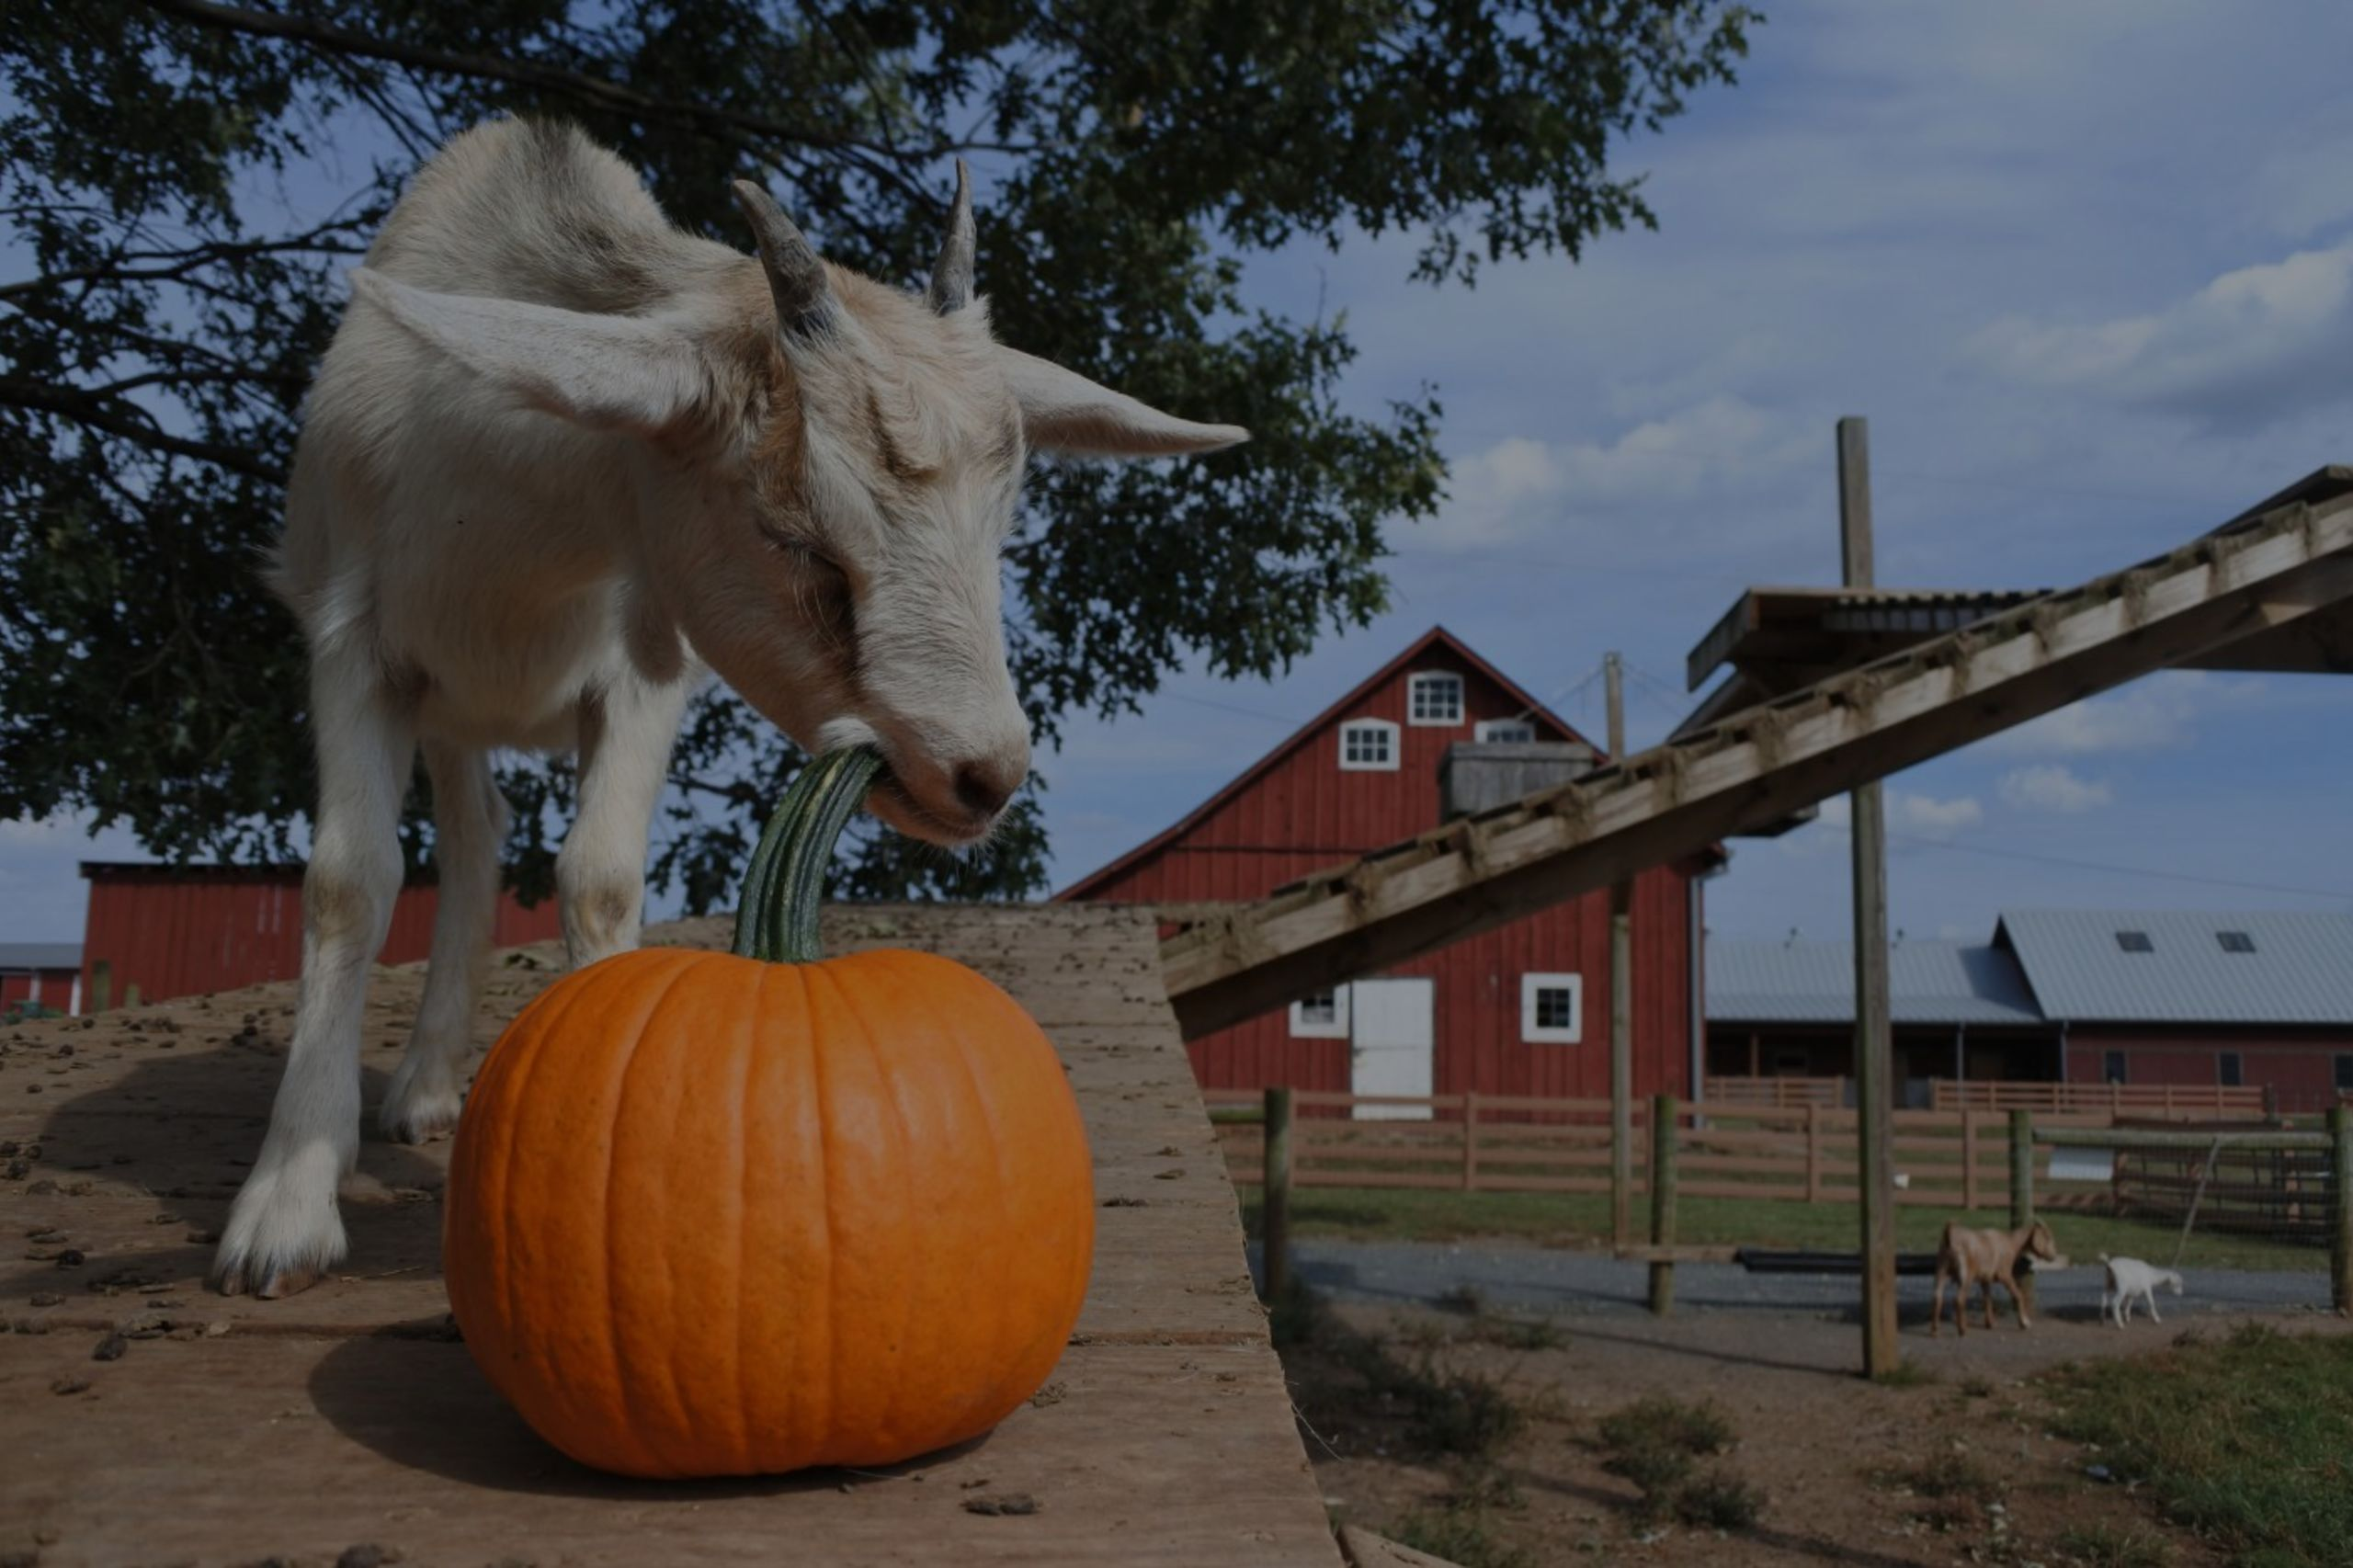 Where to Find Corn Mazes, Pumpkins & Fall Farm Fun in Loudoun, VA